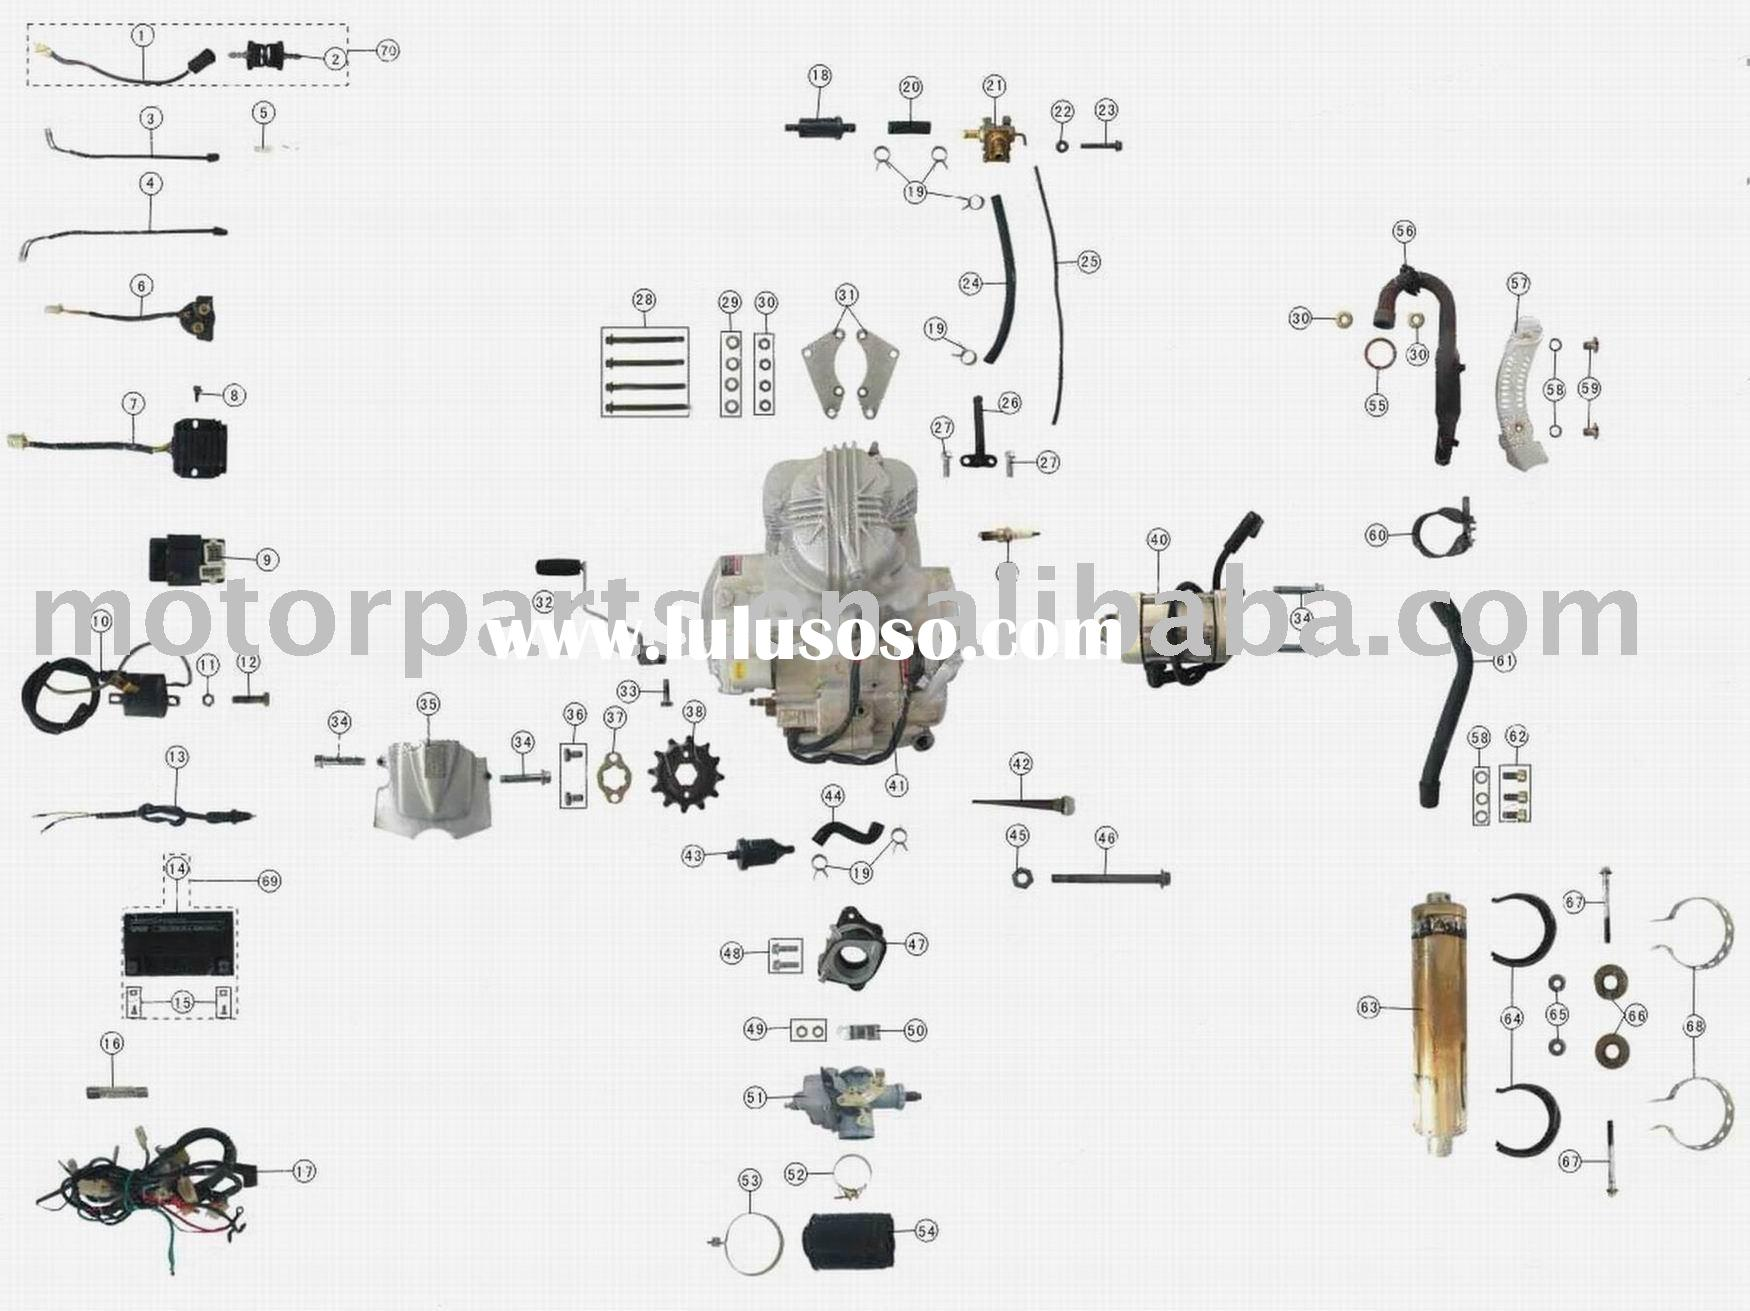 Repair And Service Manuals together with Dune Buggy Ignition Switch Wiring together with Hi Bird 250cc Atv Parts besides Cougar 110cc Atv Parts in addition Dazon 150 Engine Diagram. on 250cc chinese atv wiring diagram